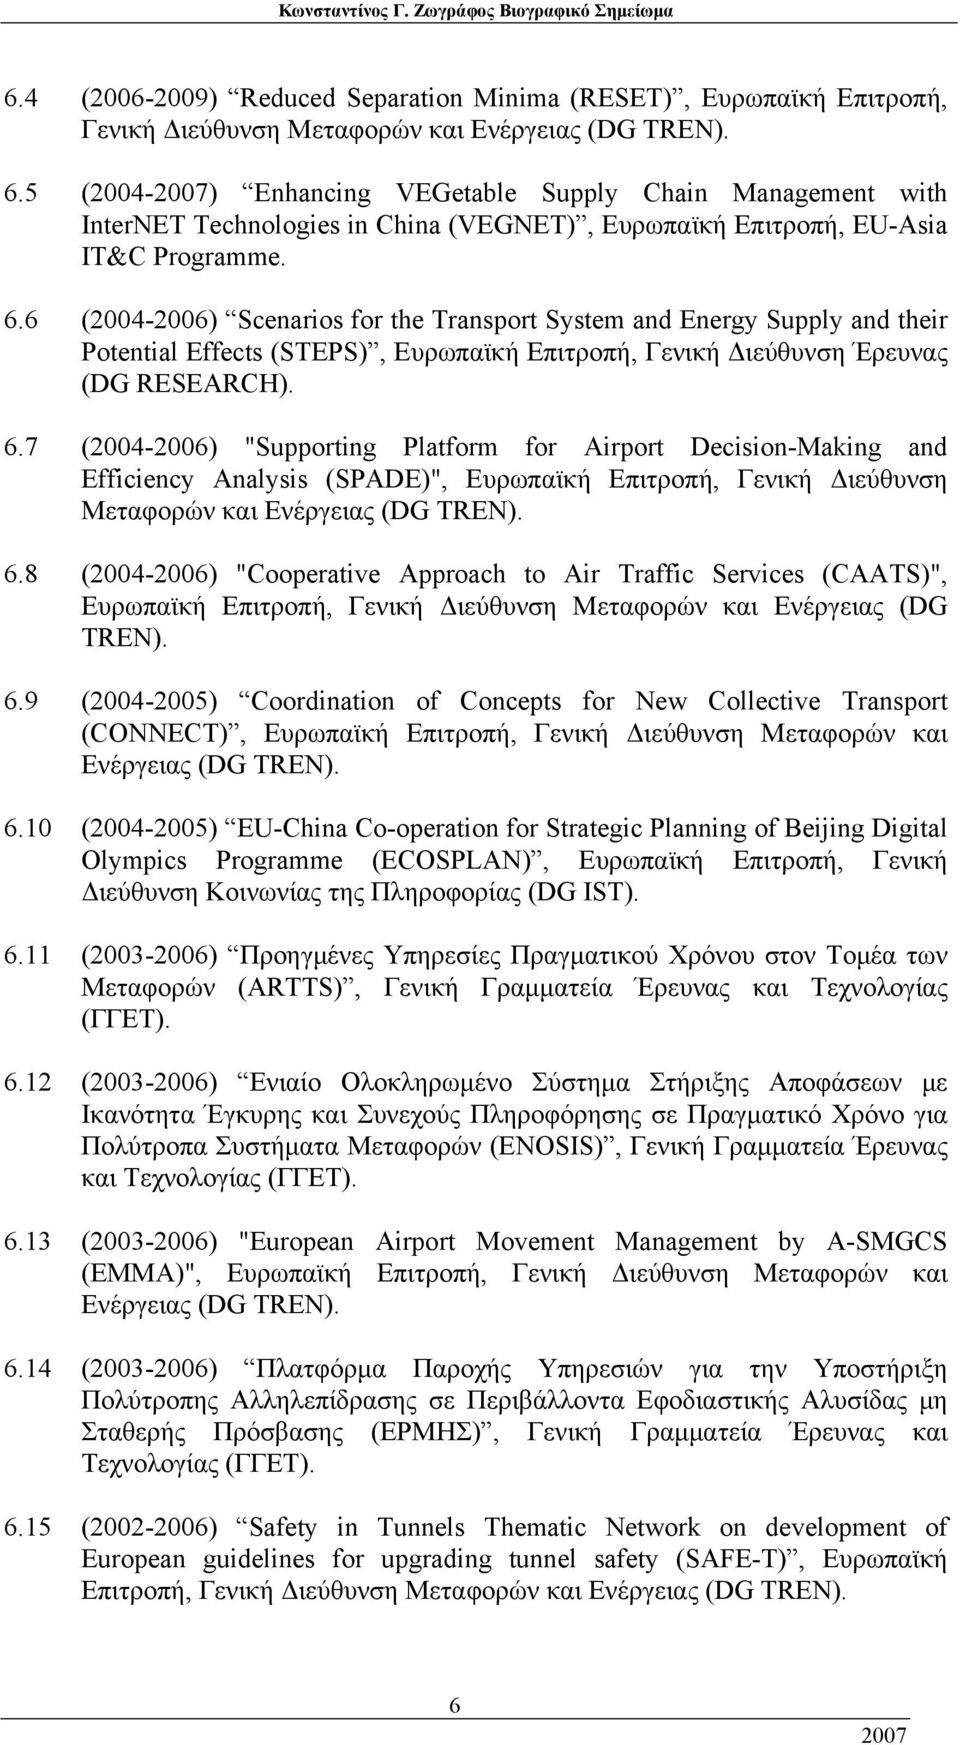 6 (2004-2006) Scenarios for the Transport System and Energy Supply and their Potential Effects (STEPS), Ευρωπαϊκή Επιτροπή, Γενική Διεύθυνση Έρευνας (DG RESEARCH). 6.